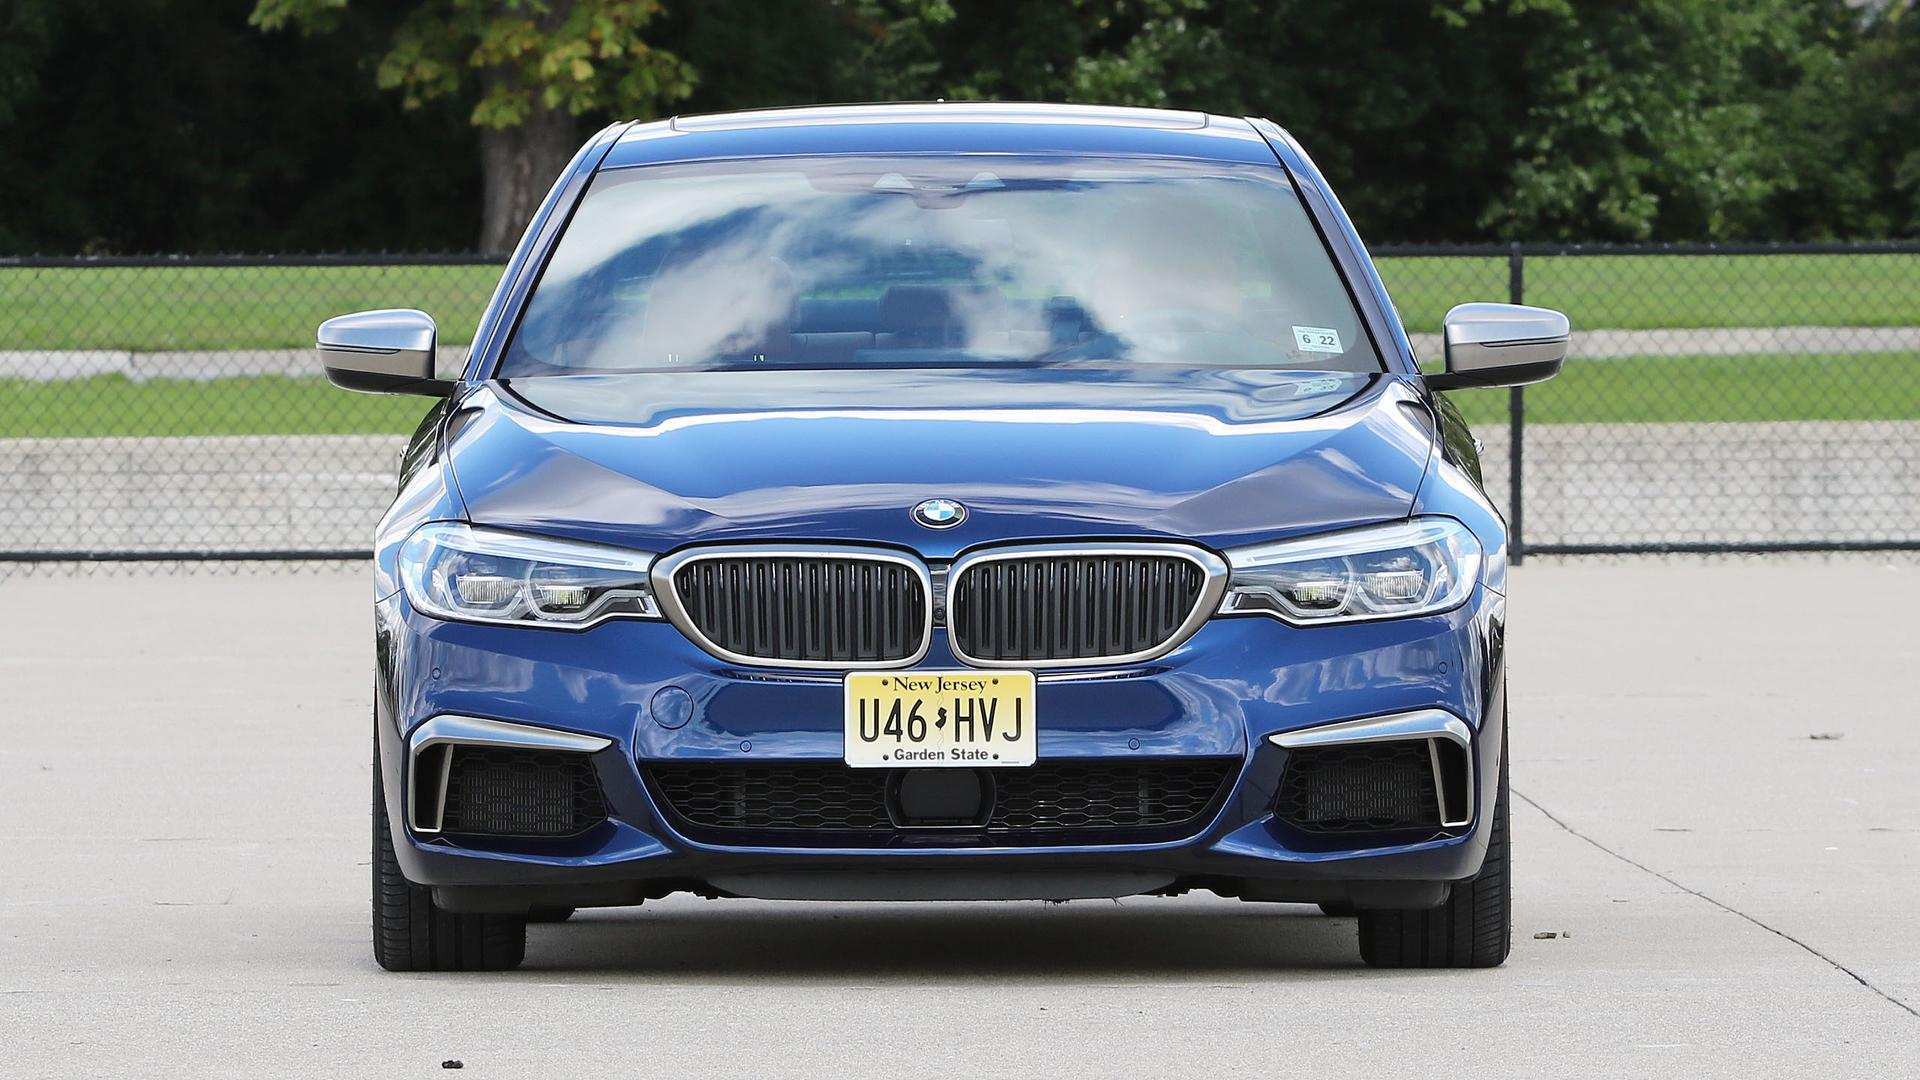 75 Concept of Bmw 535I 2020 Images with Bmw 535I 2020